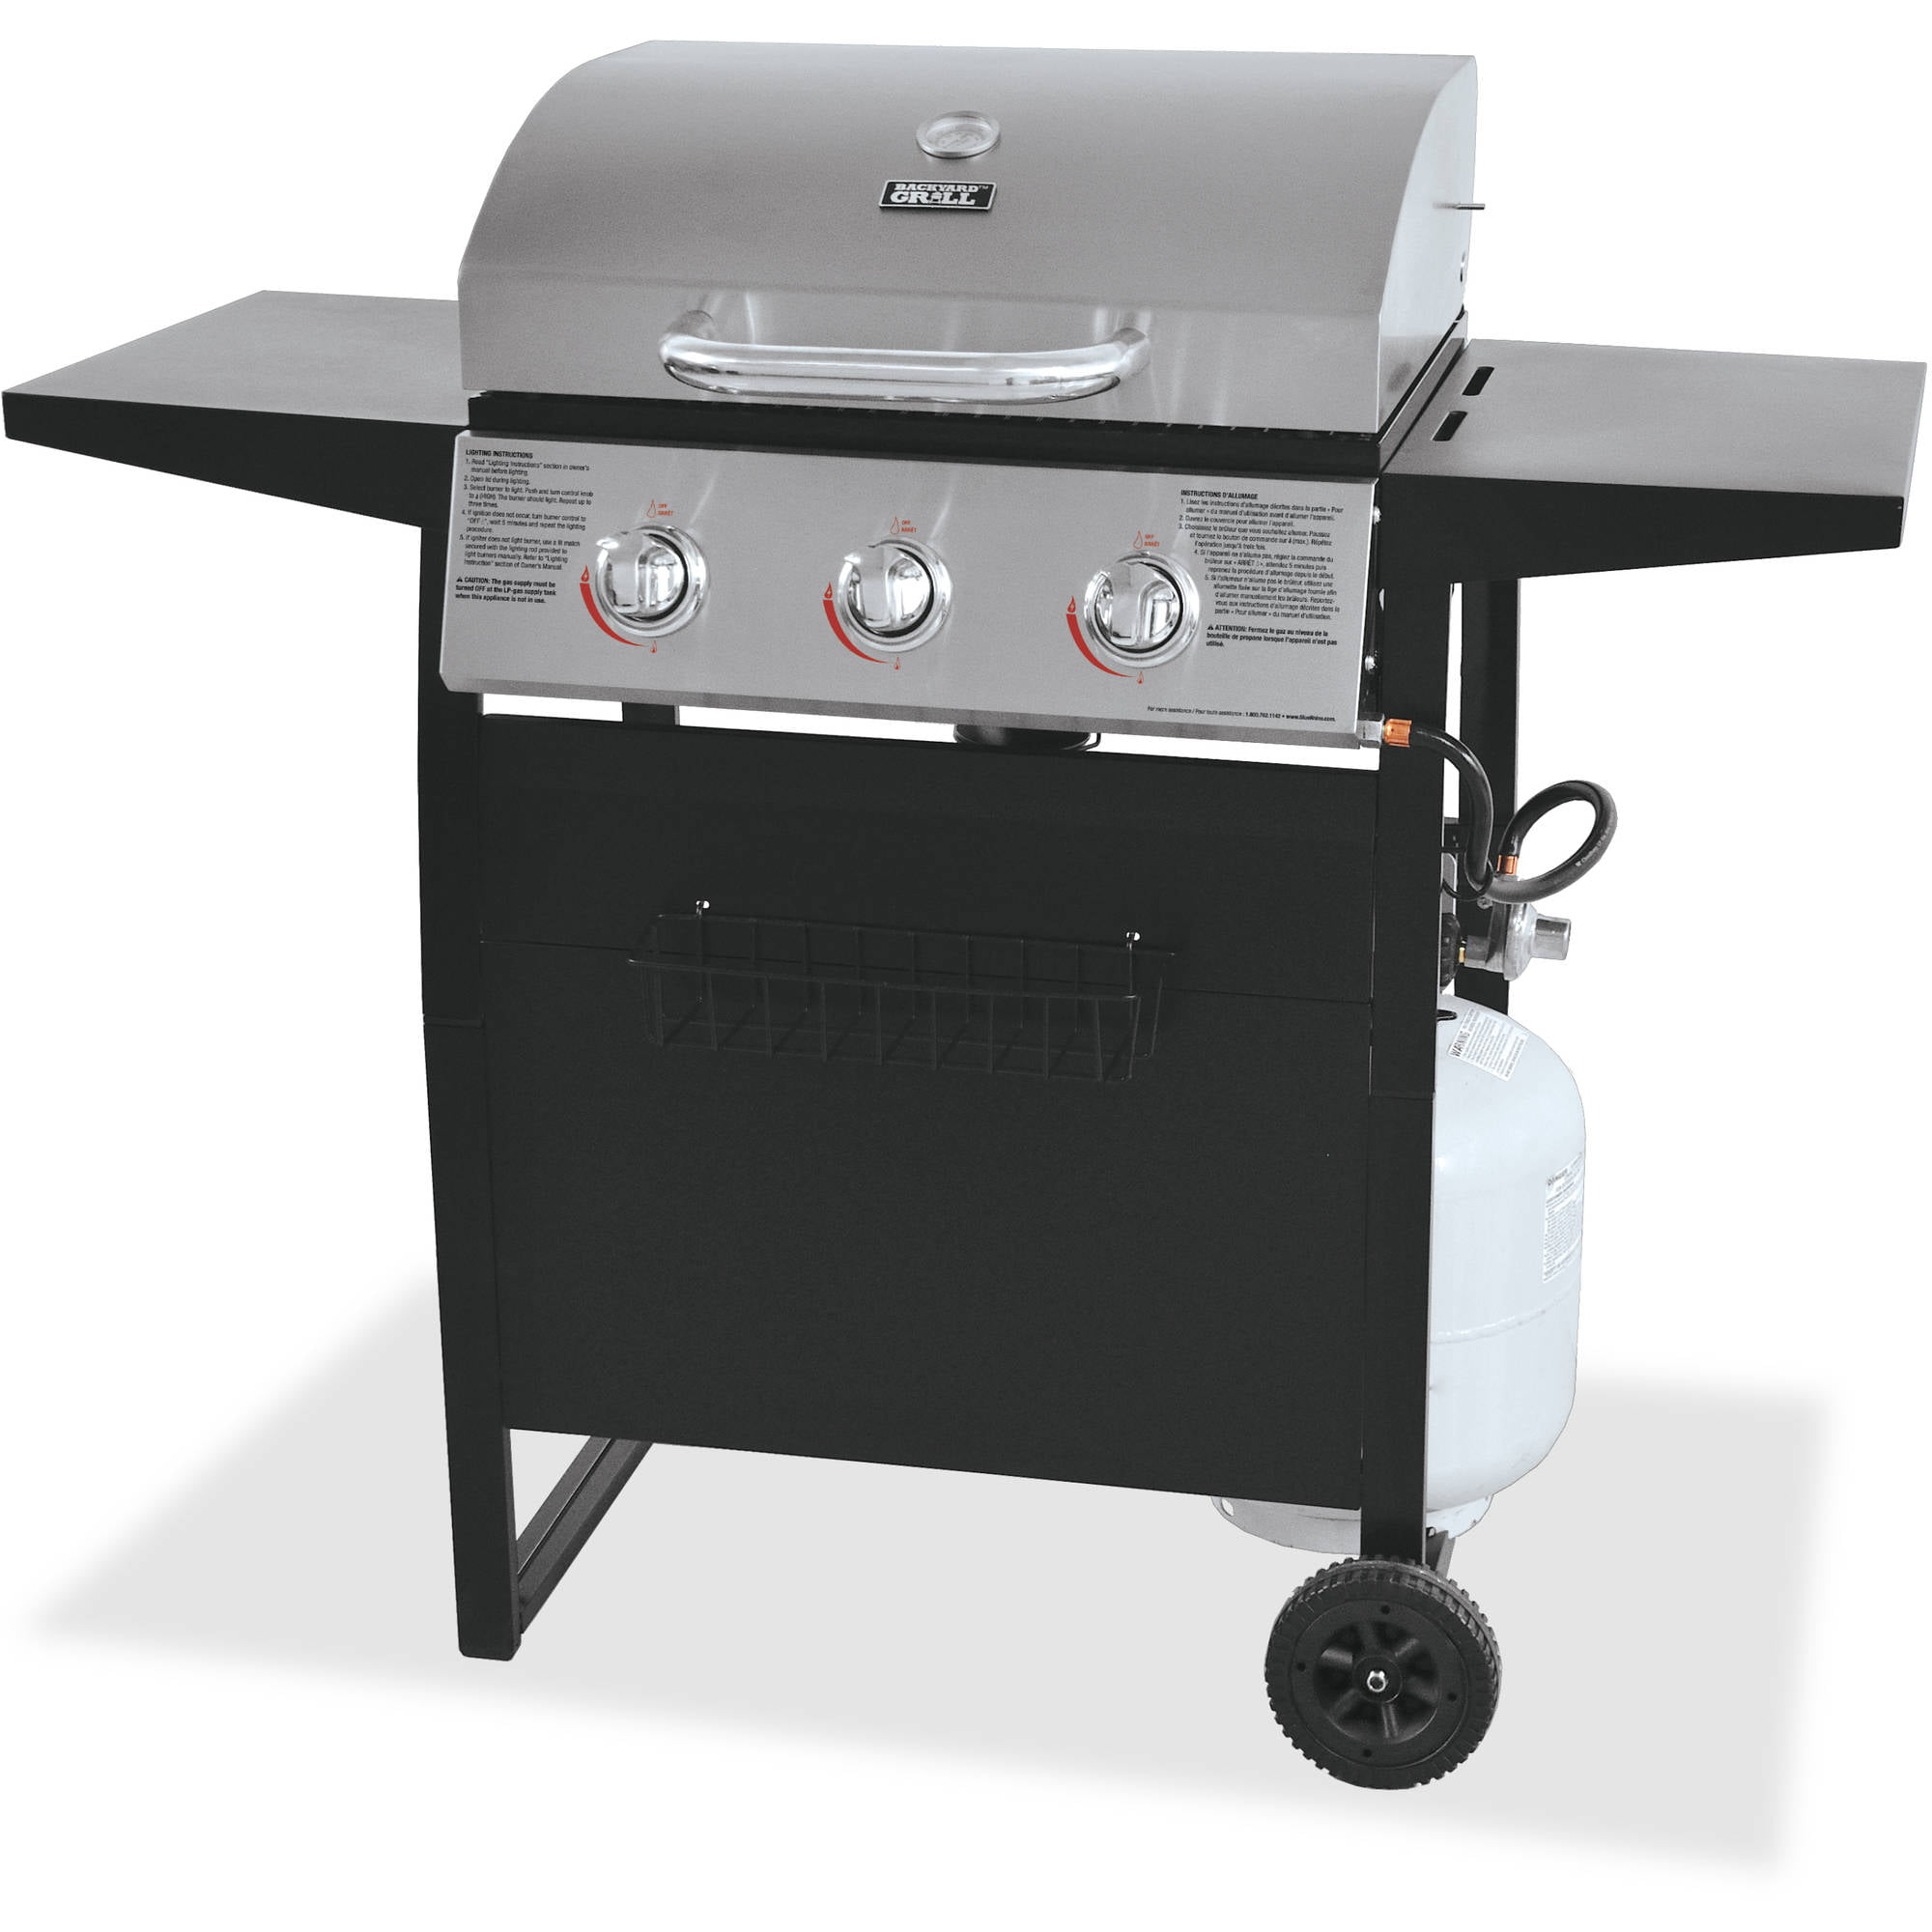 Backyard Grill Stainless Steel 3 Burner Gas Grill